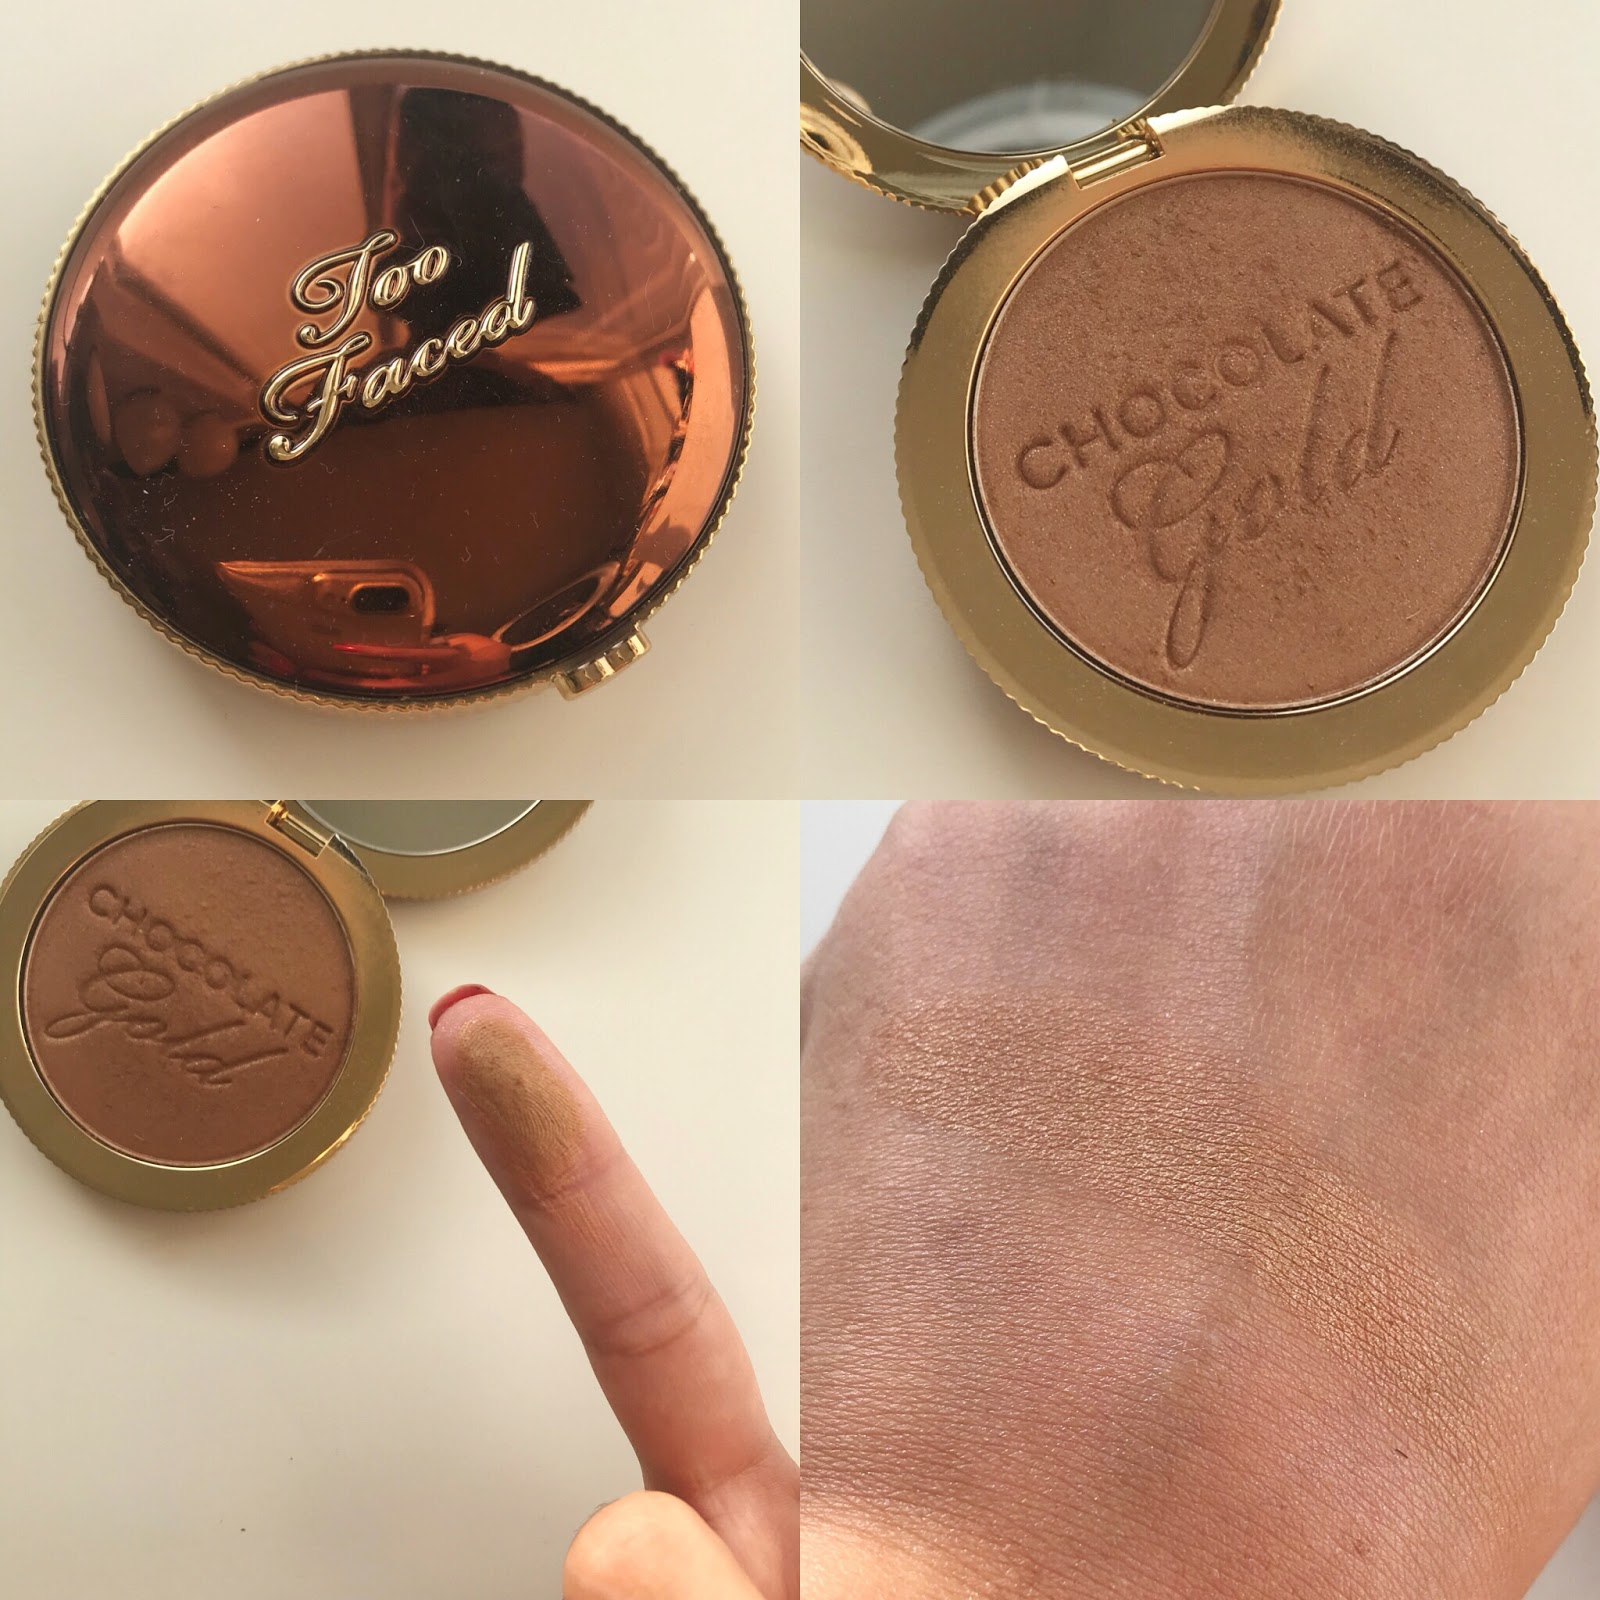 She S A Wildflower Too Faced Chocolate Gold Collection